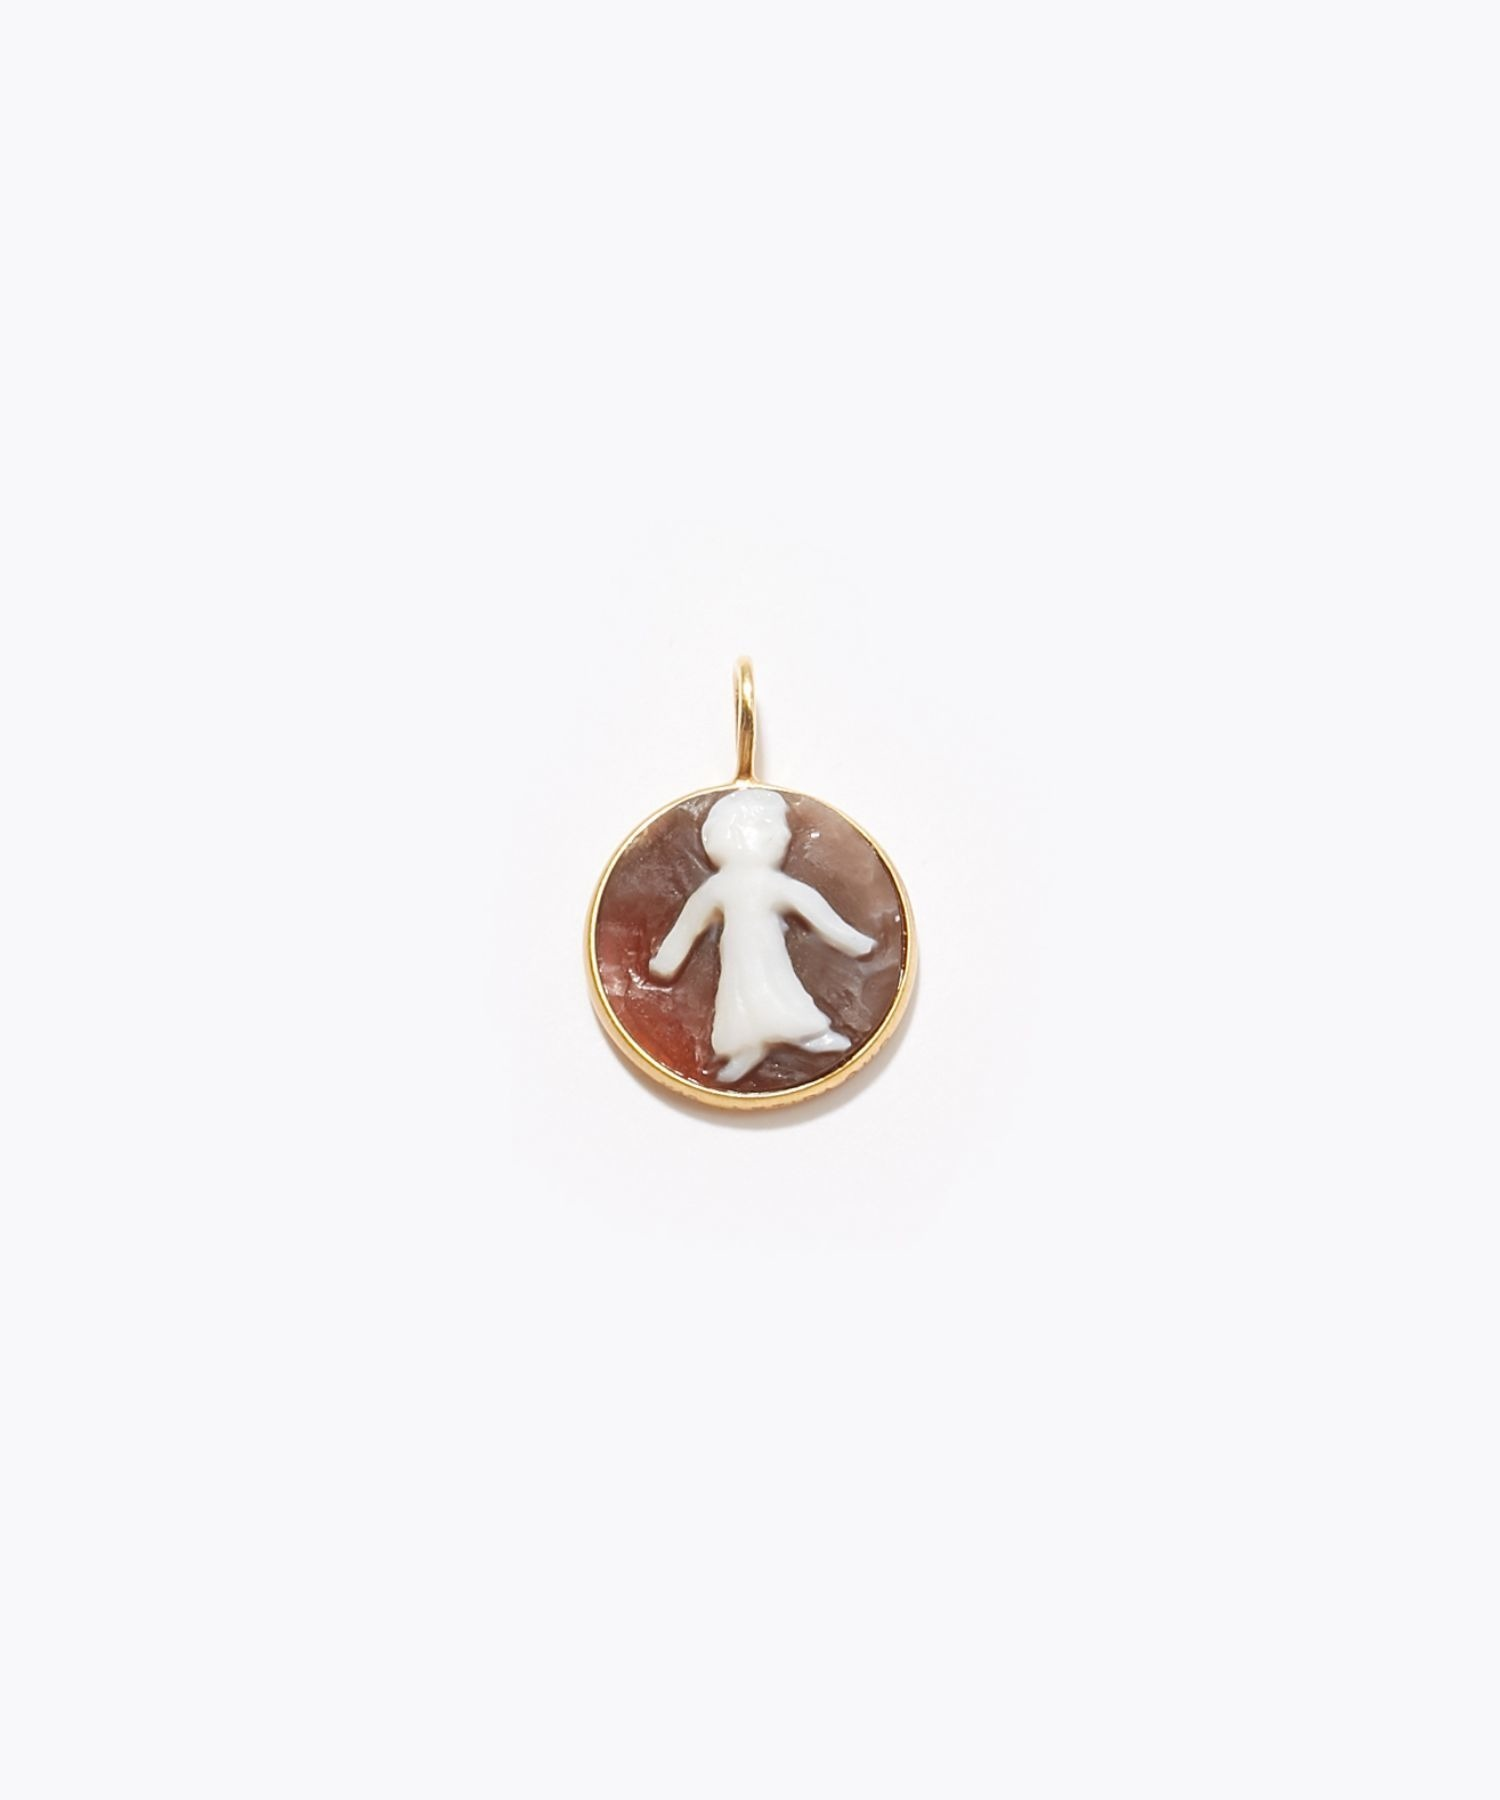 [constellation] Virgo cameo curving charm